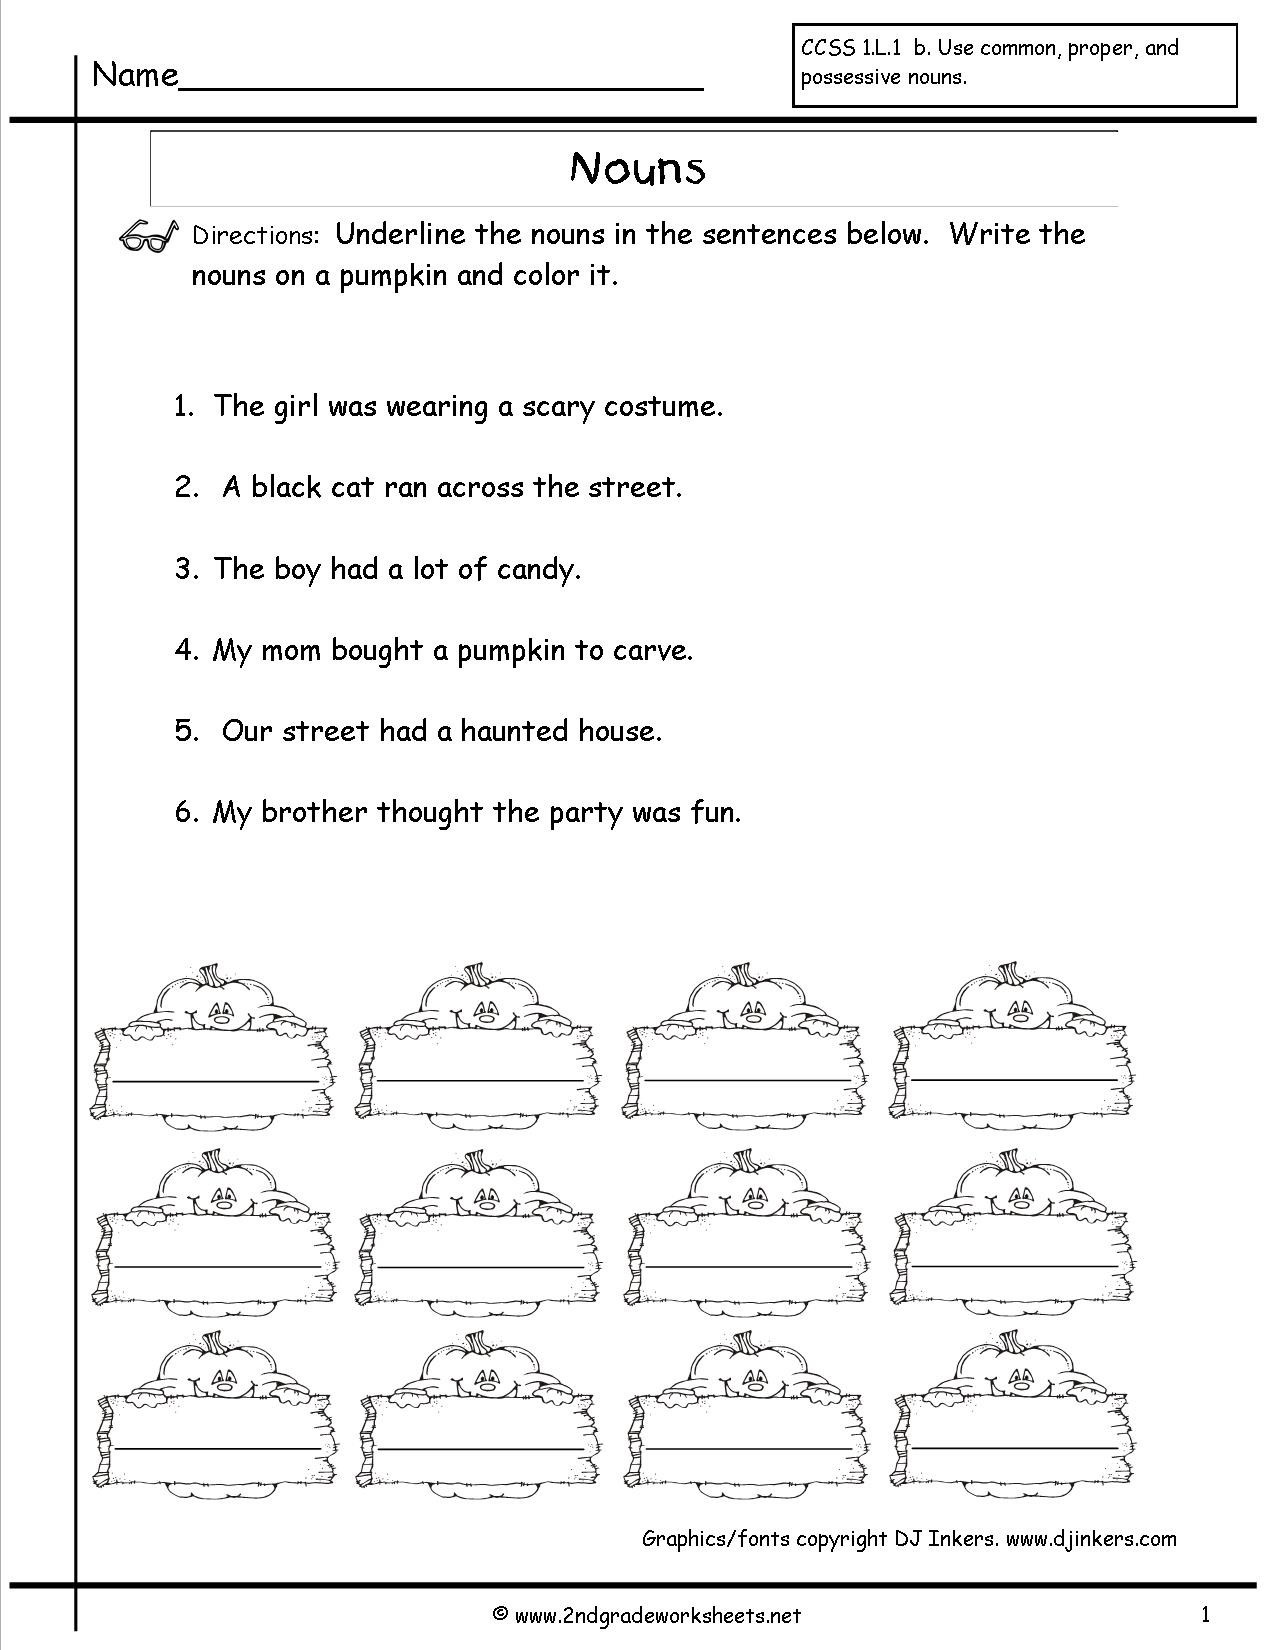 Possessive Nouns Worksheets 3rd Grade Figurative Language Worksheets High School – Alisha Blogs